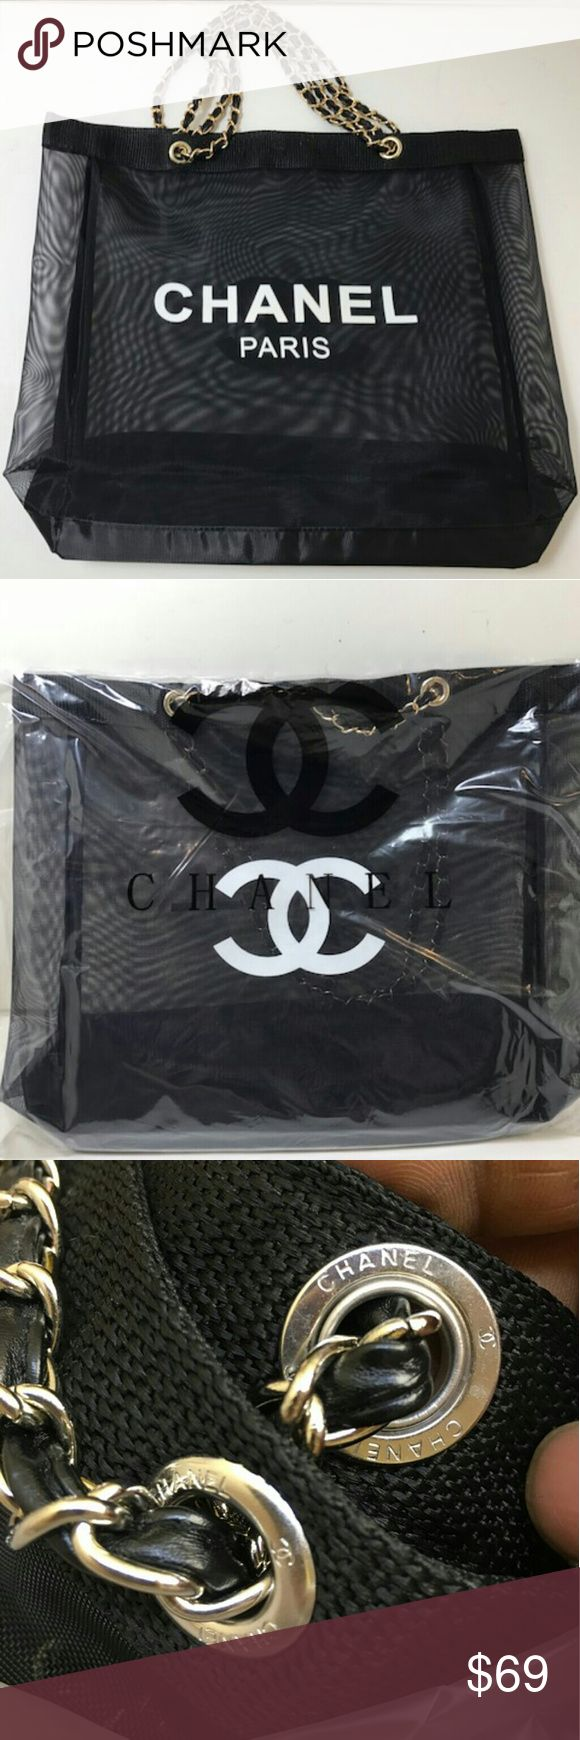 """Brand new Chanel vip gift bag mesh tote bag gold Brand new Chanel vip gift bag mesh tote bag gold chains . size 15"""" x 15"""" . chain drop 11"""". Look at the gold ring inside the bag with Chanel on it. 100% authentic! CHANEL Bags Totes"""